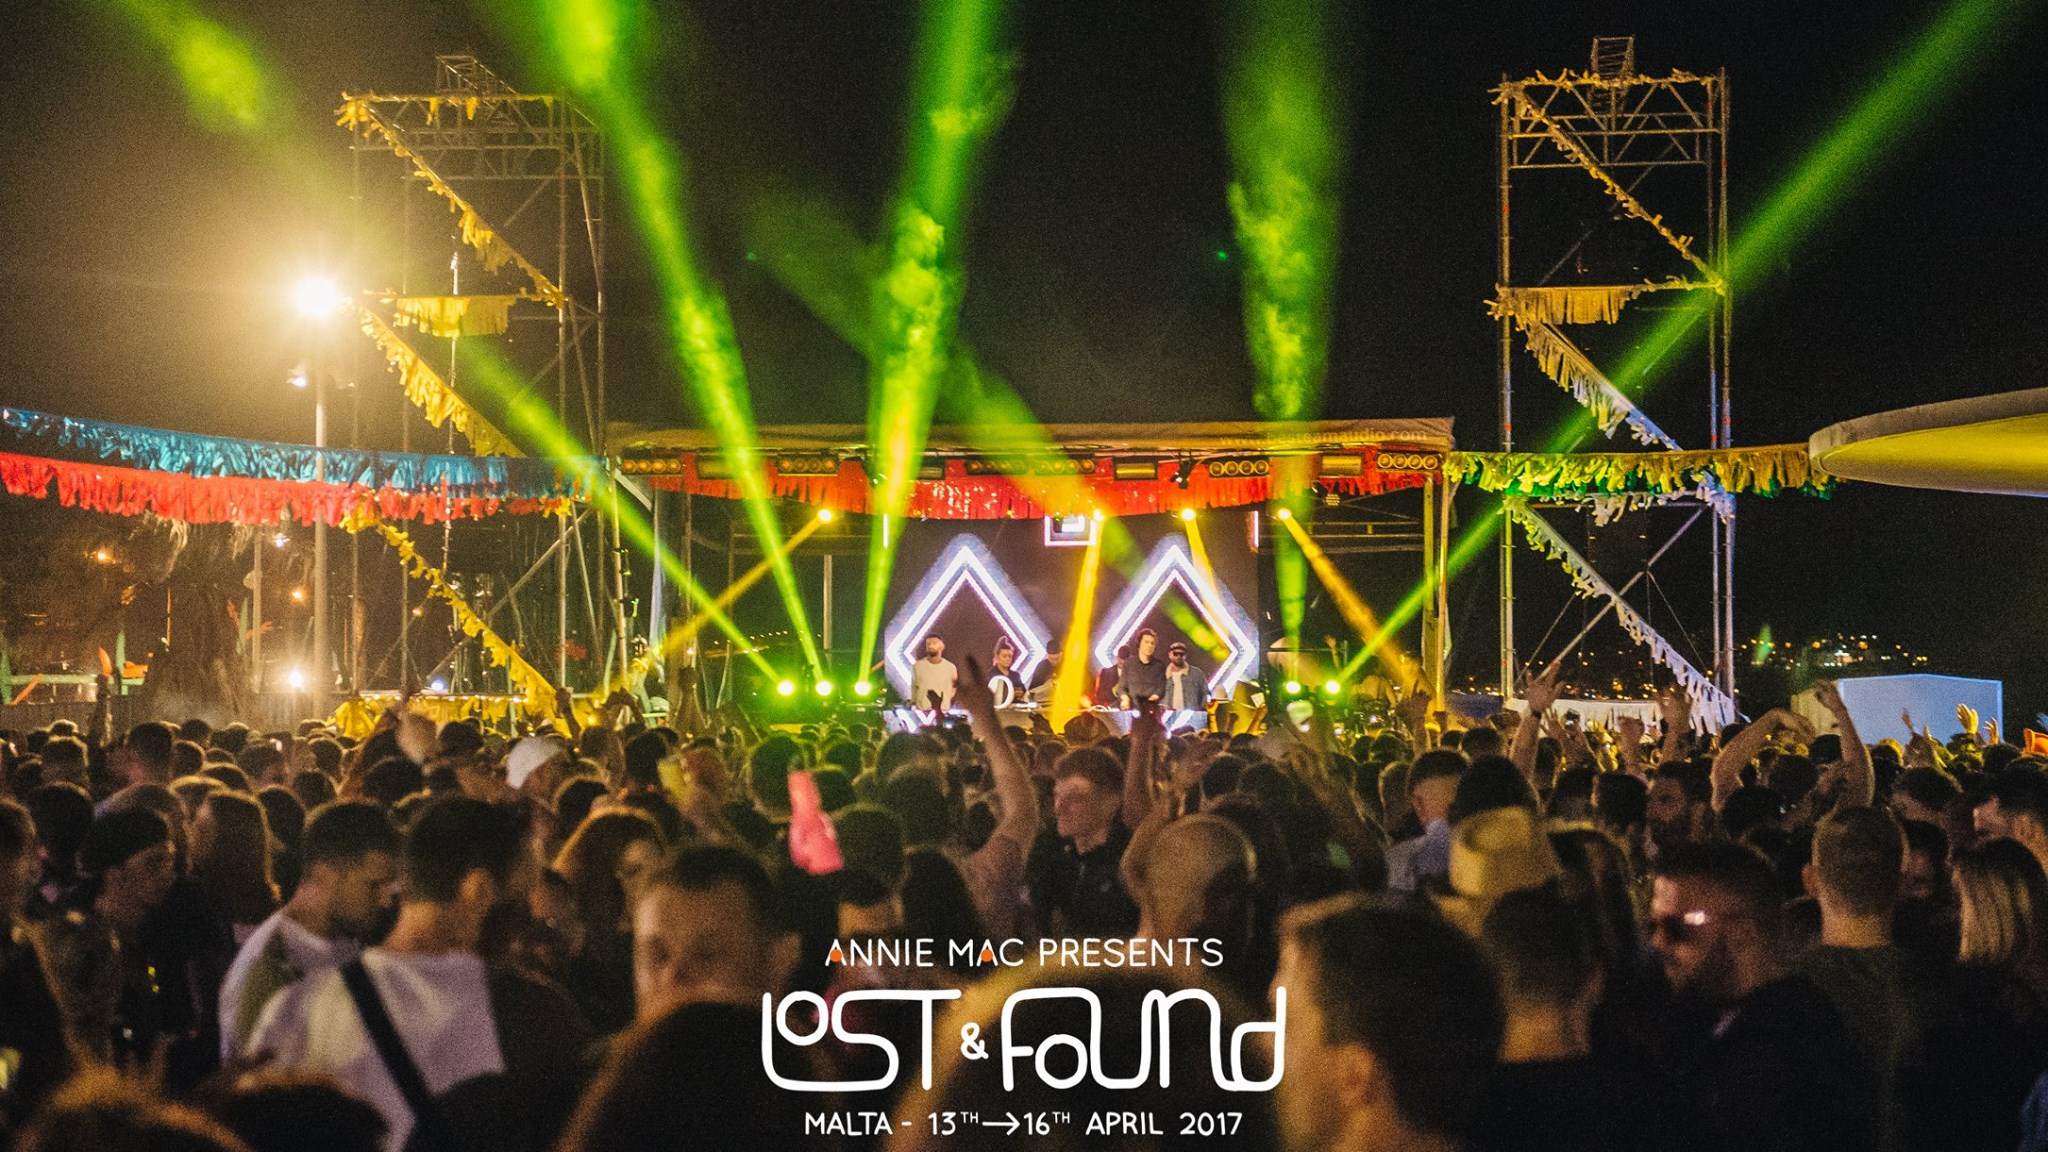 lost and found festival 2017 malta first day